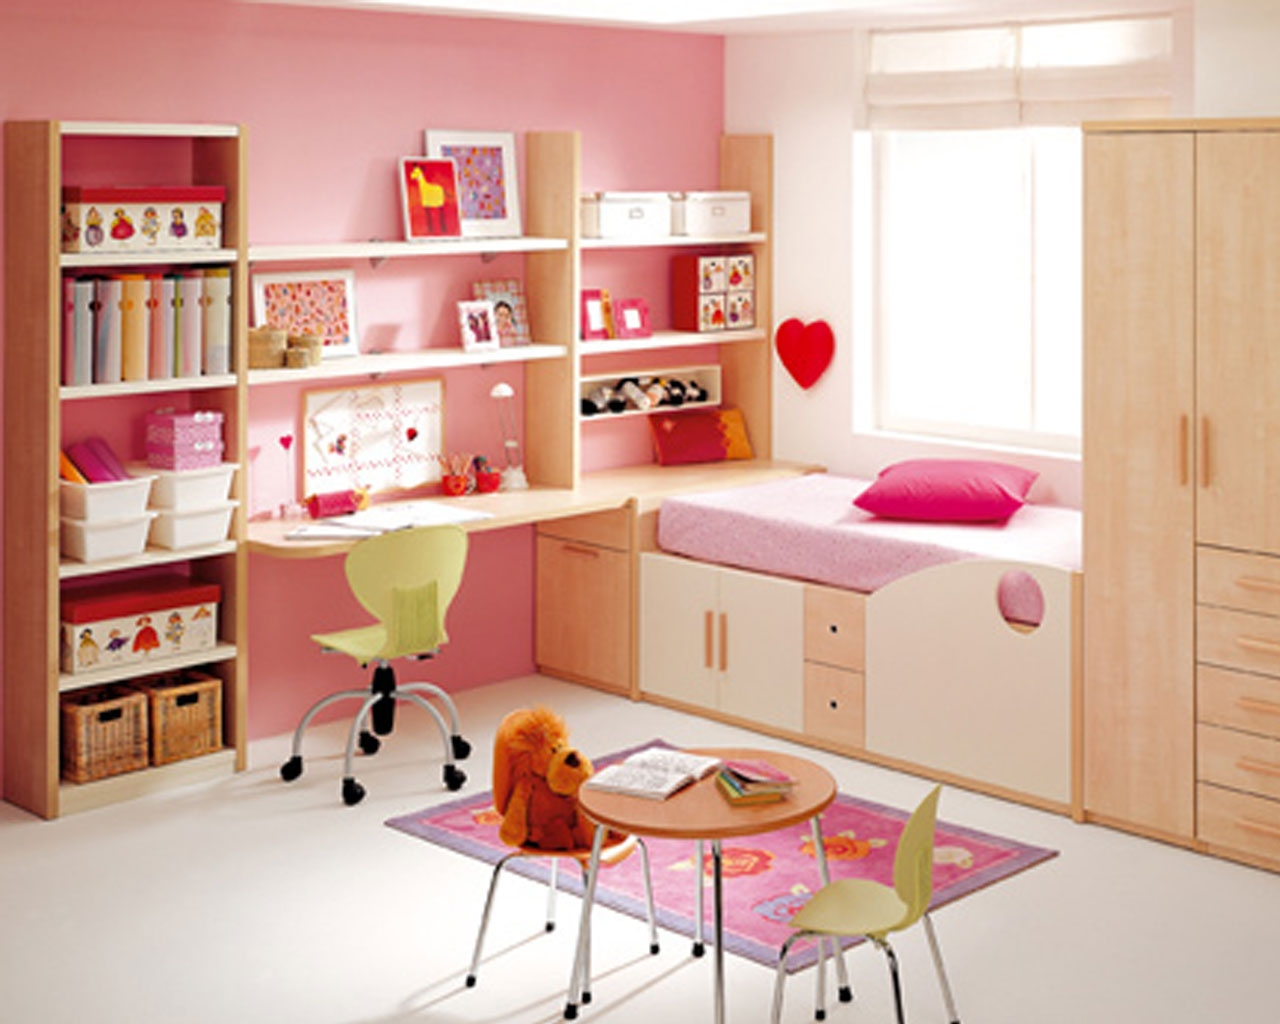 Pink Playful Paint Colors for Small Bedrooms